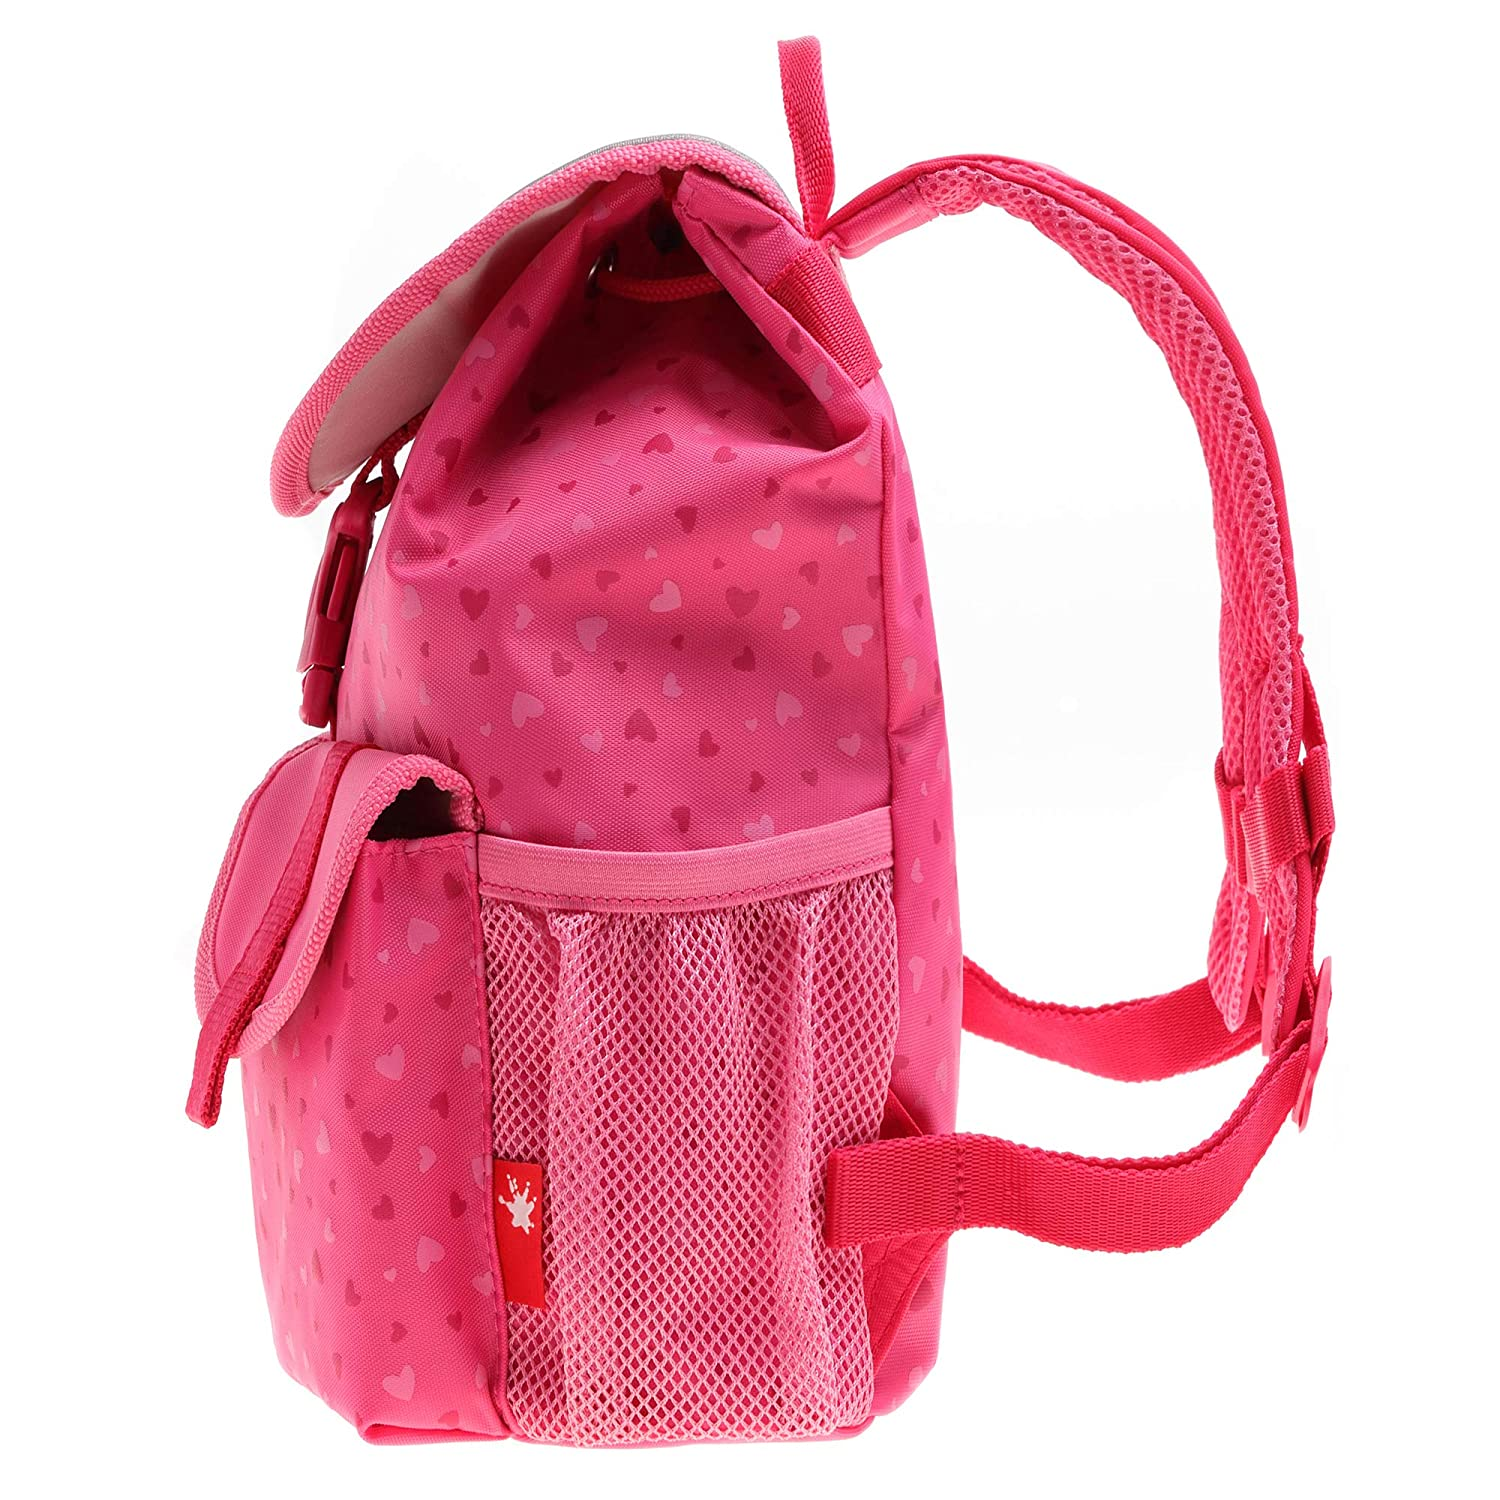 Sac /à Dos Taille M 30 cm sigikid Pinky Queeny Rose 24912 9 litres Fille